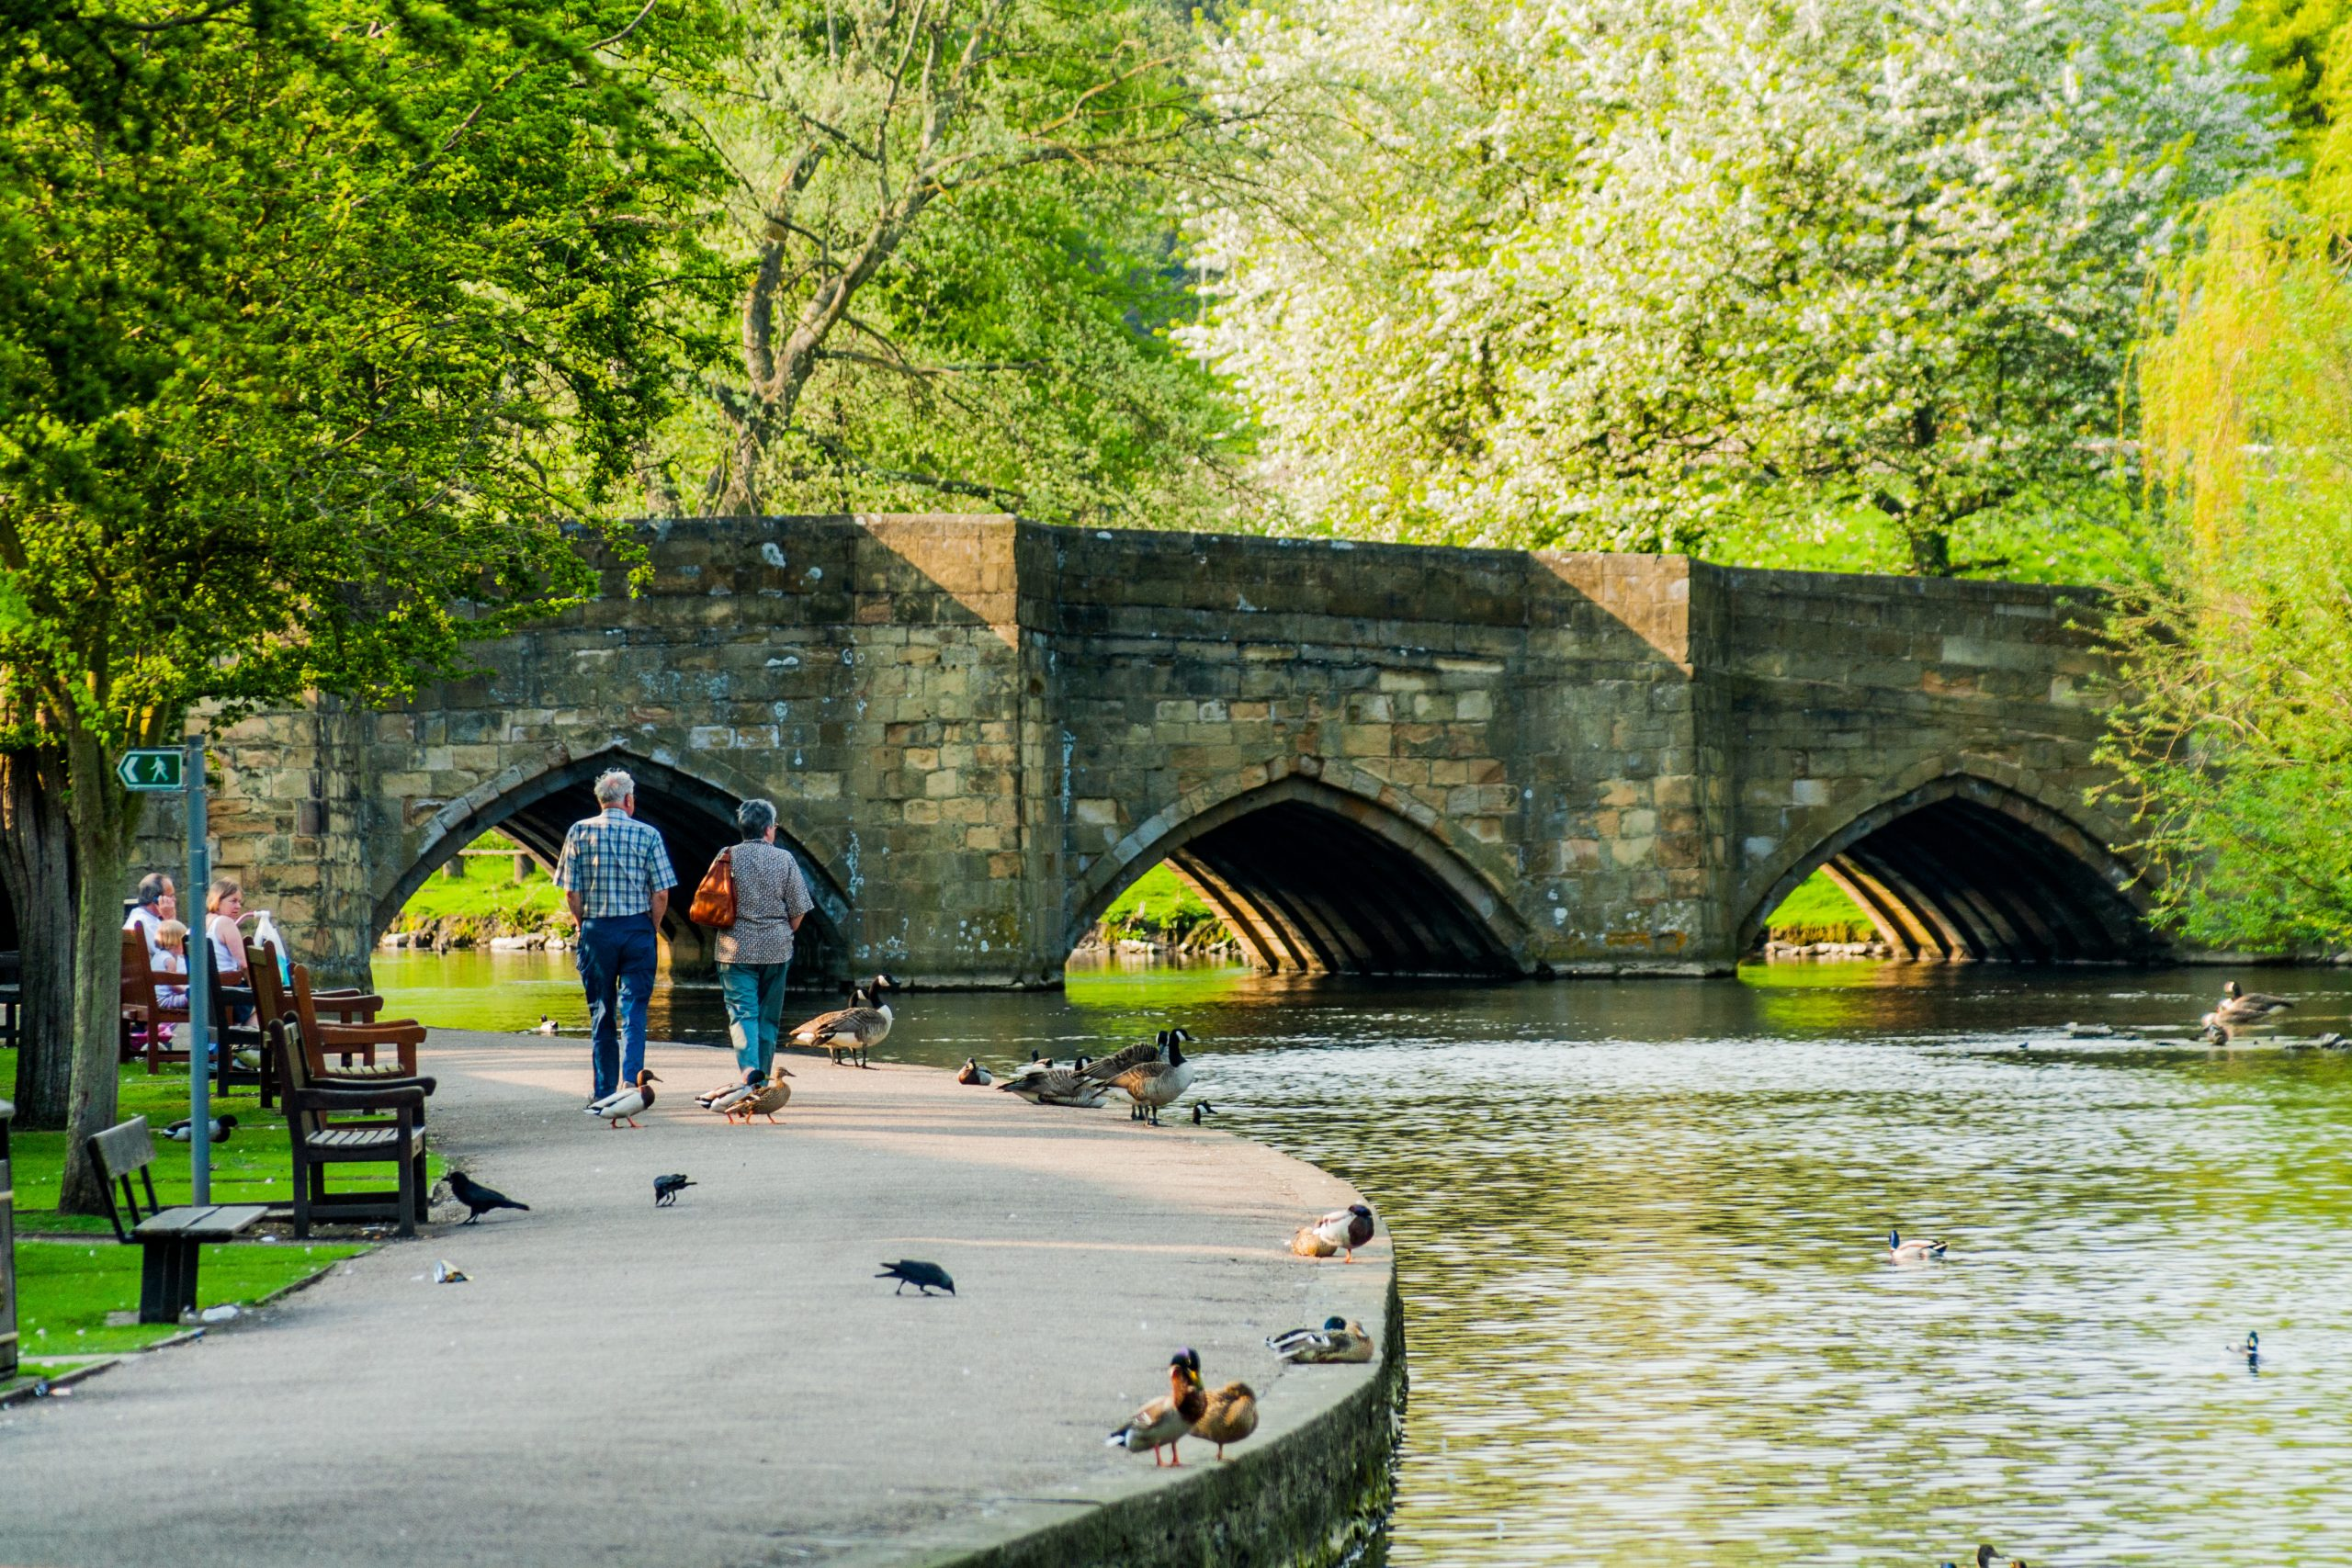 Visit Bakewell with Allied Taxis